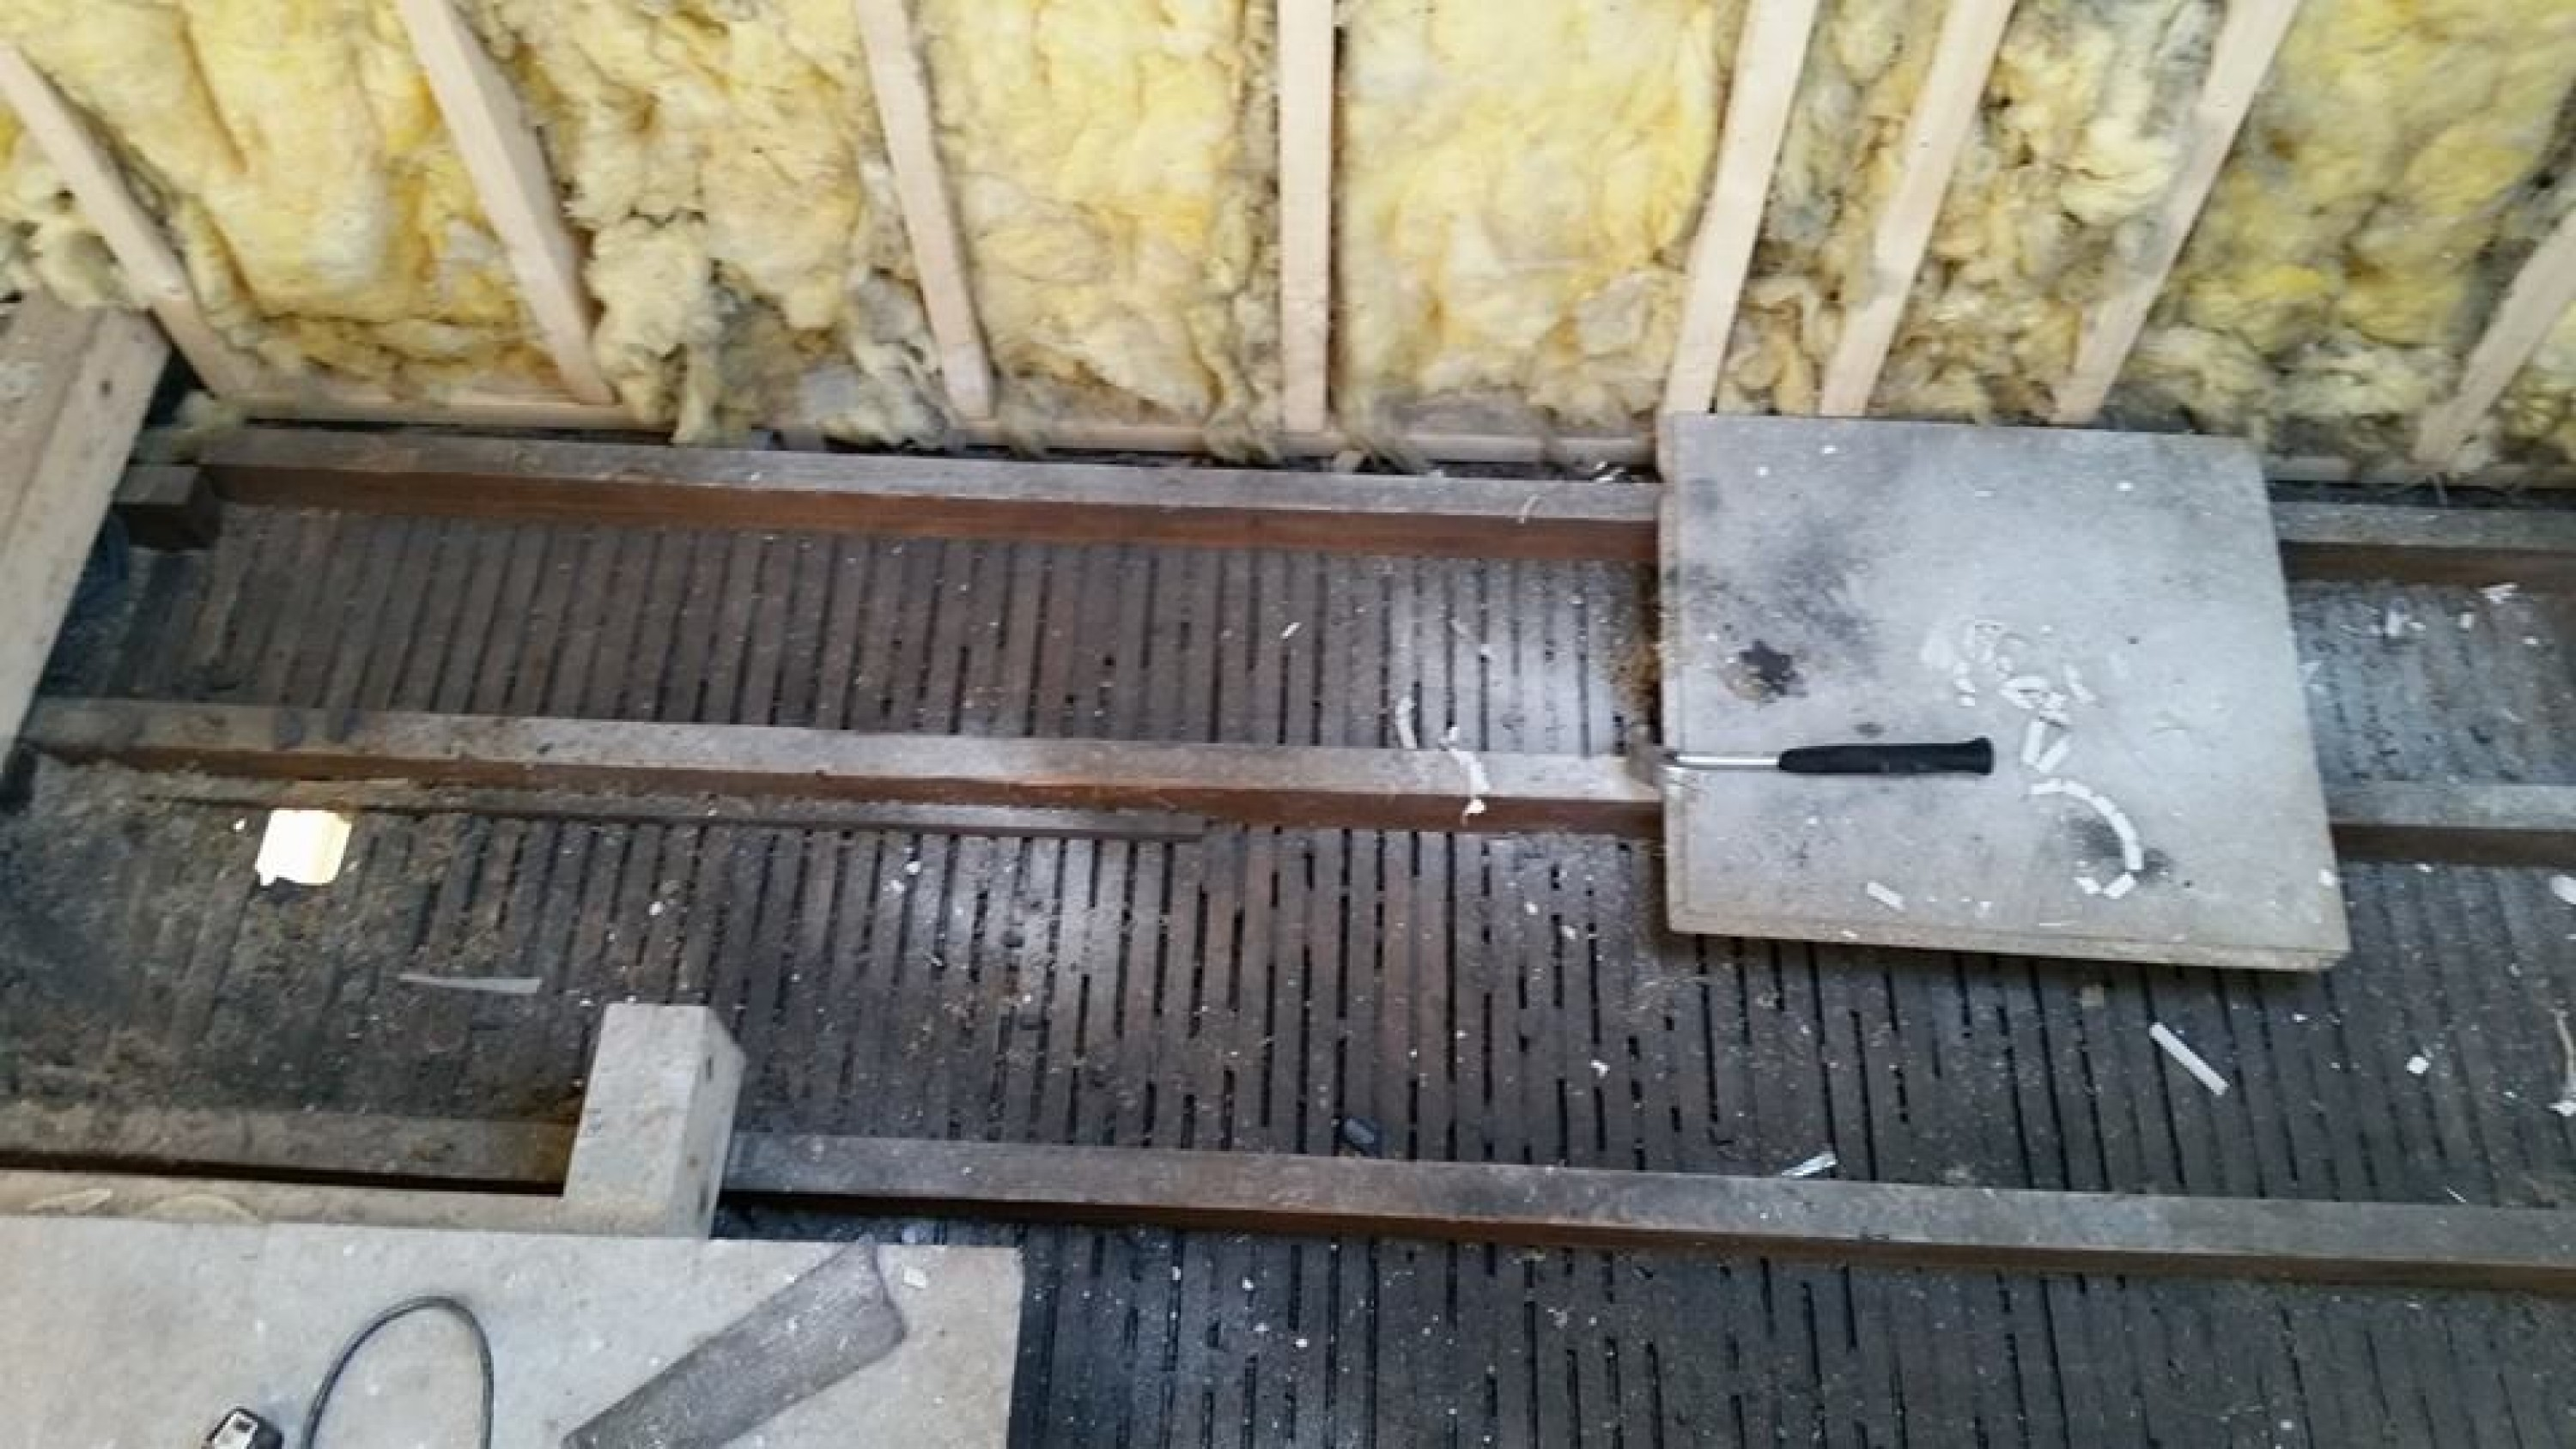 Existing lath & Plaster ceiling before being removed to form stairwell